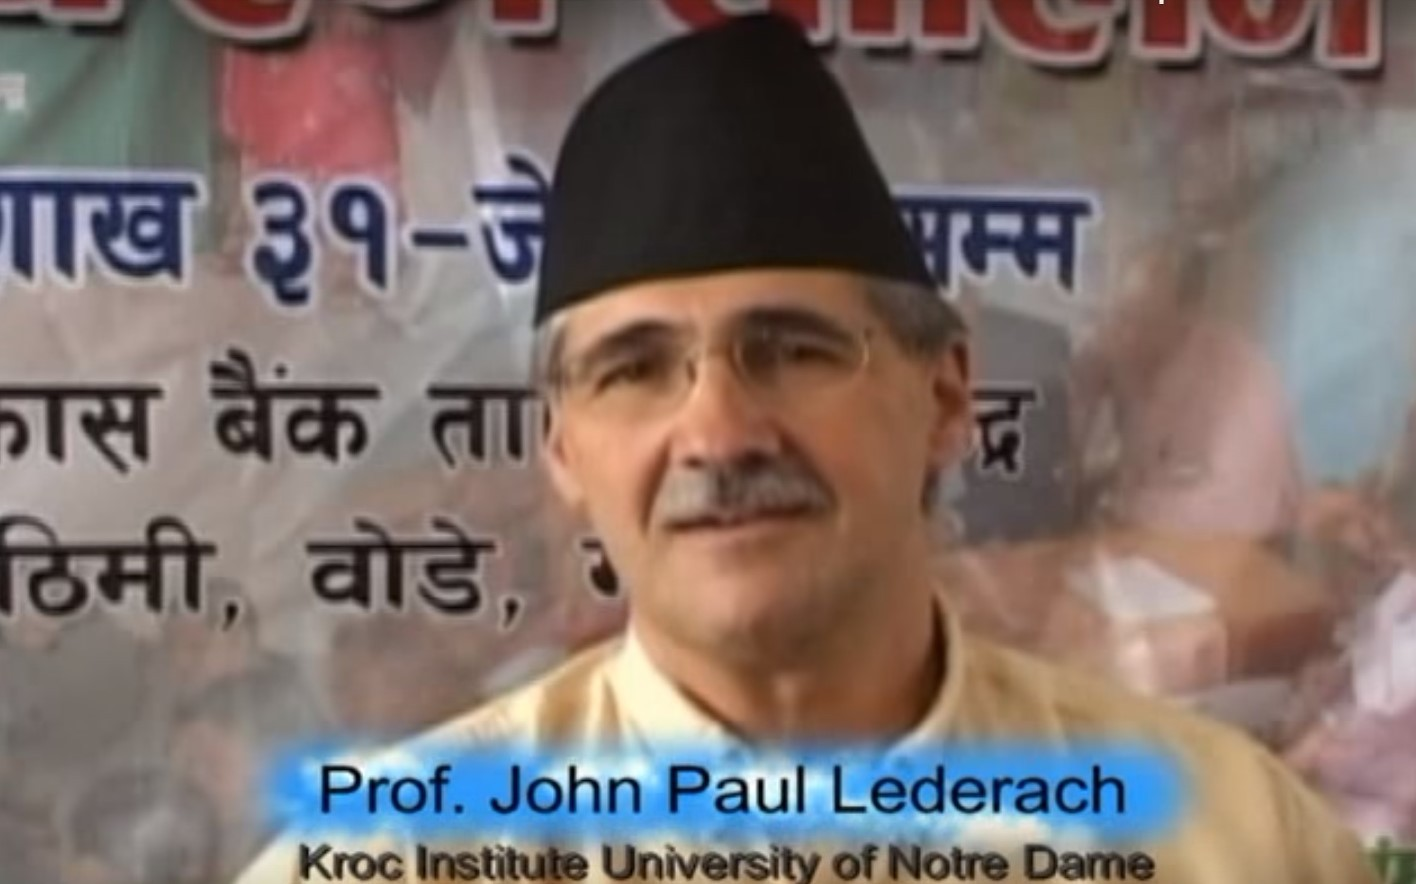 Prof John Paul Lederach's Views on Conflict Transformation Movement in Nepal